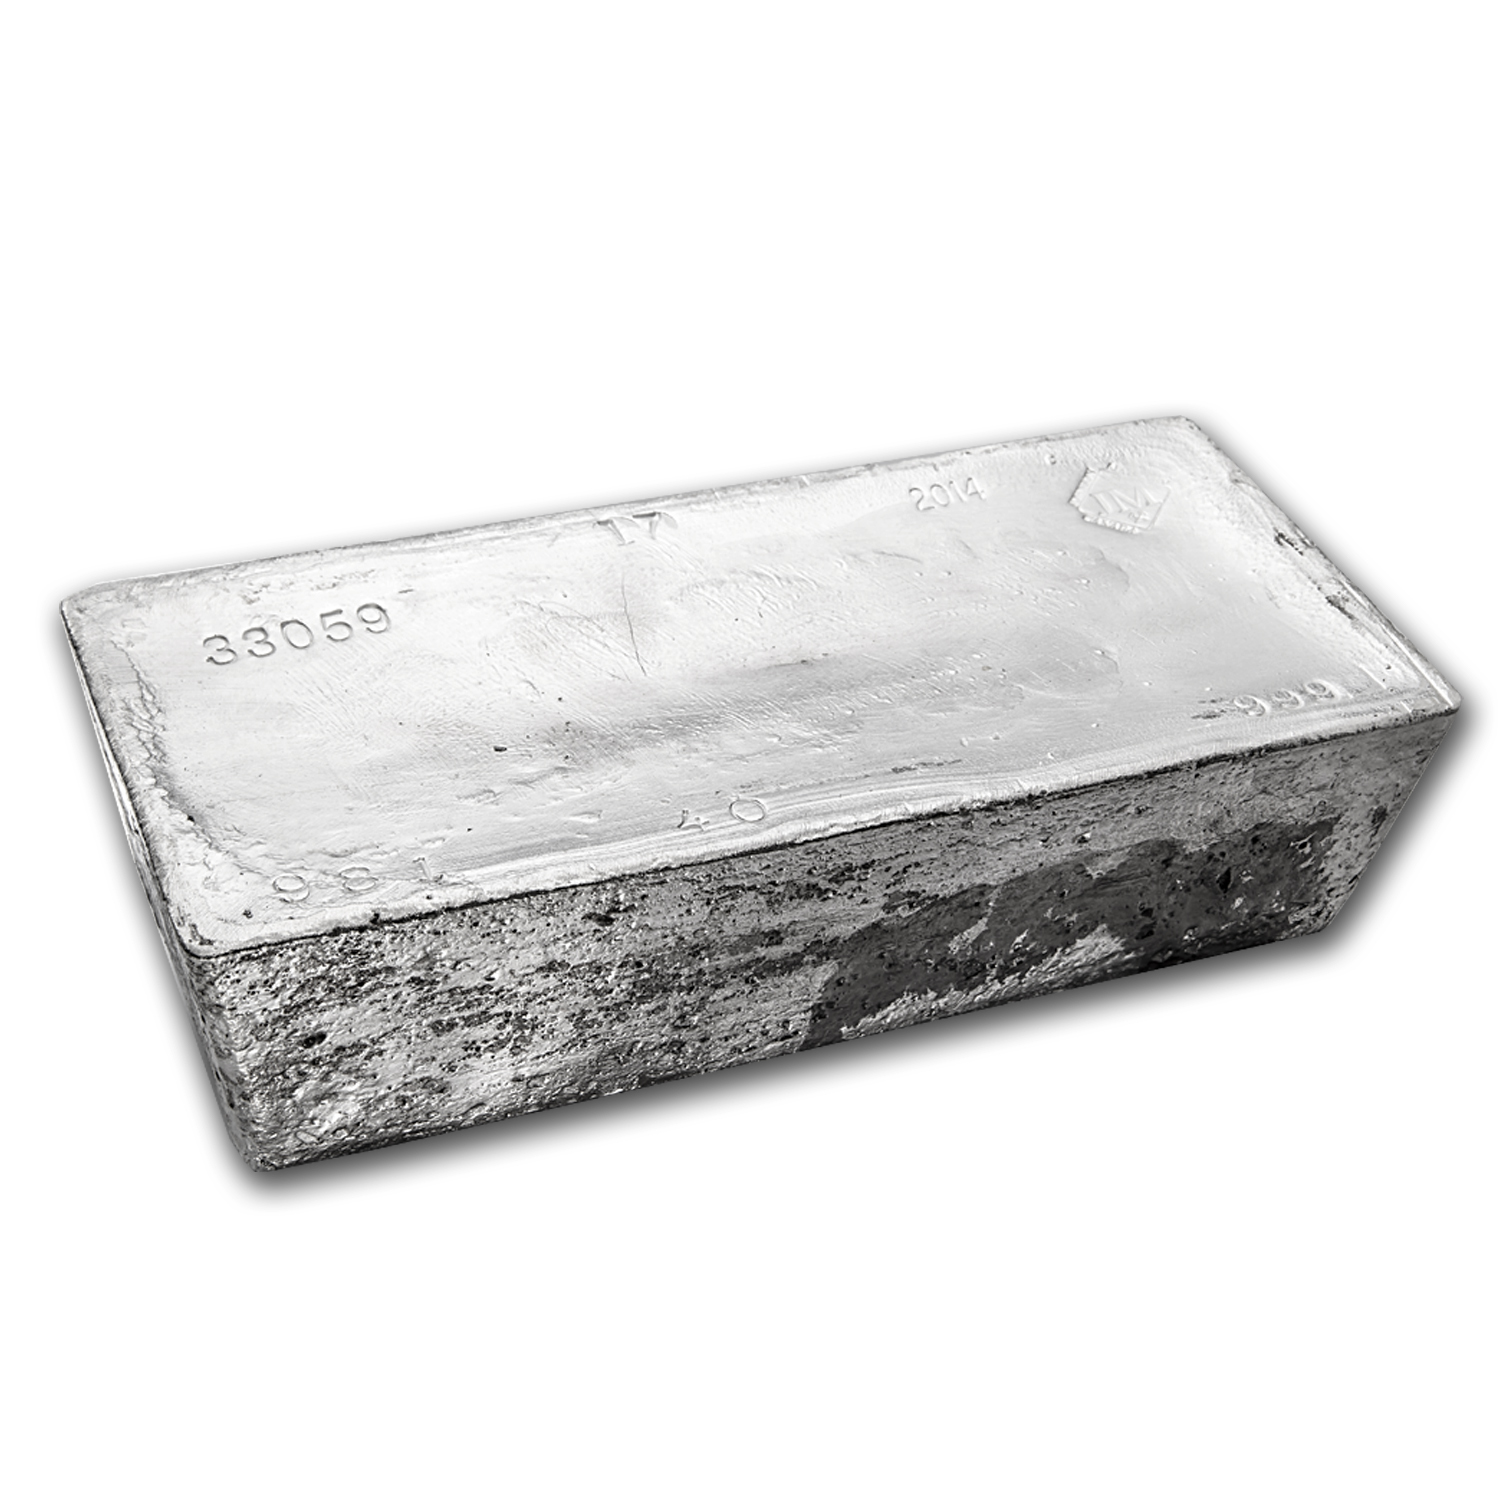 987.60 oz Silver Bars - Johnson Matthey